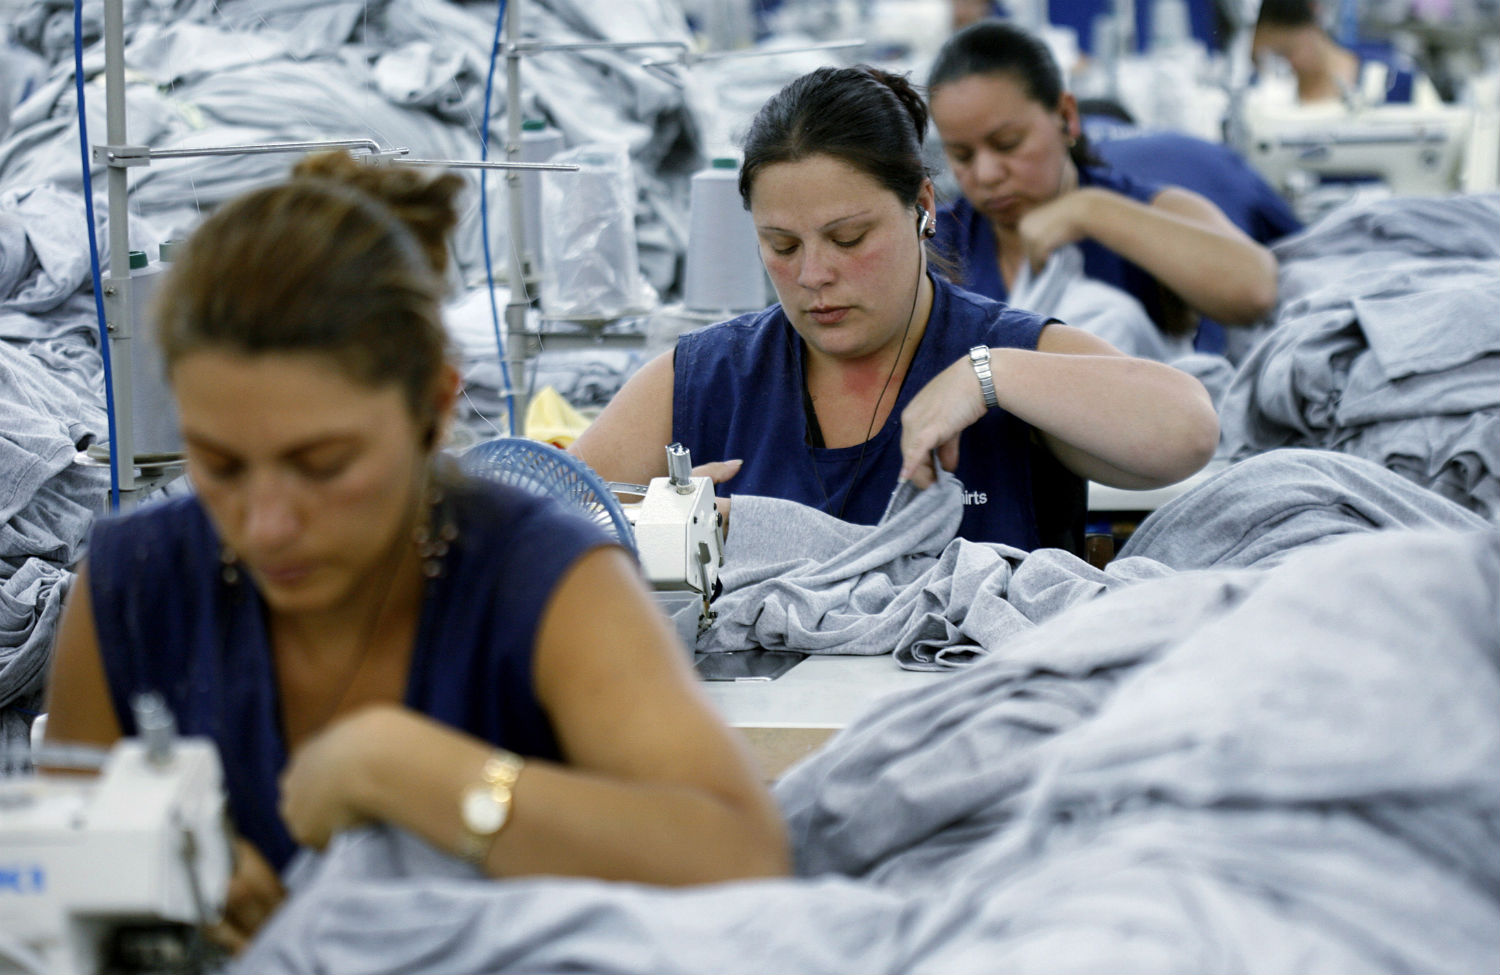 Garment-workers